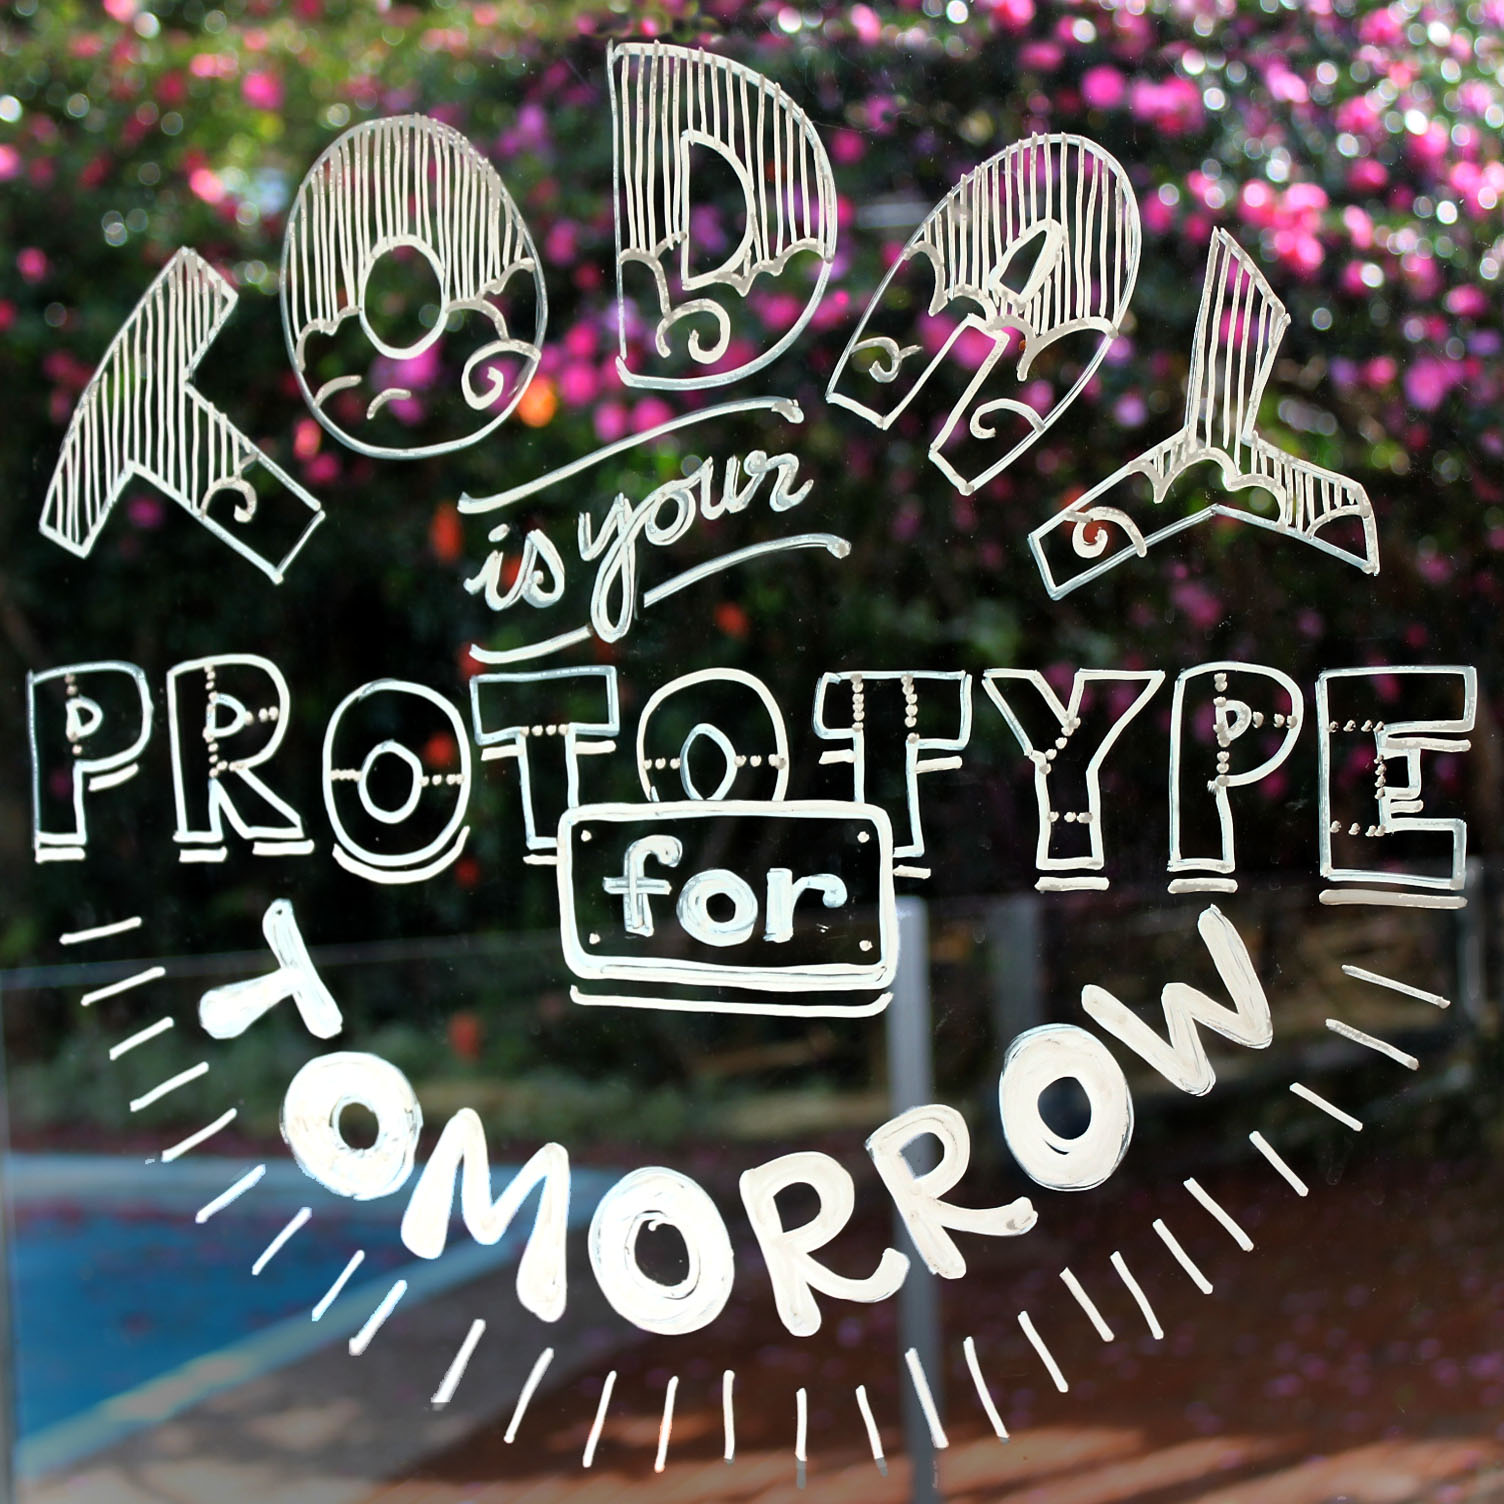 Today is your prototype for tomorrow